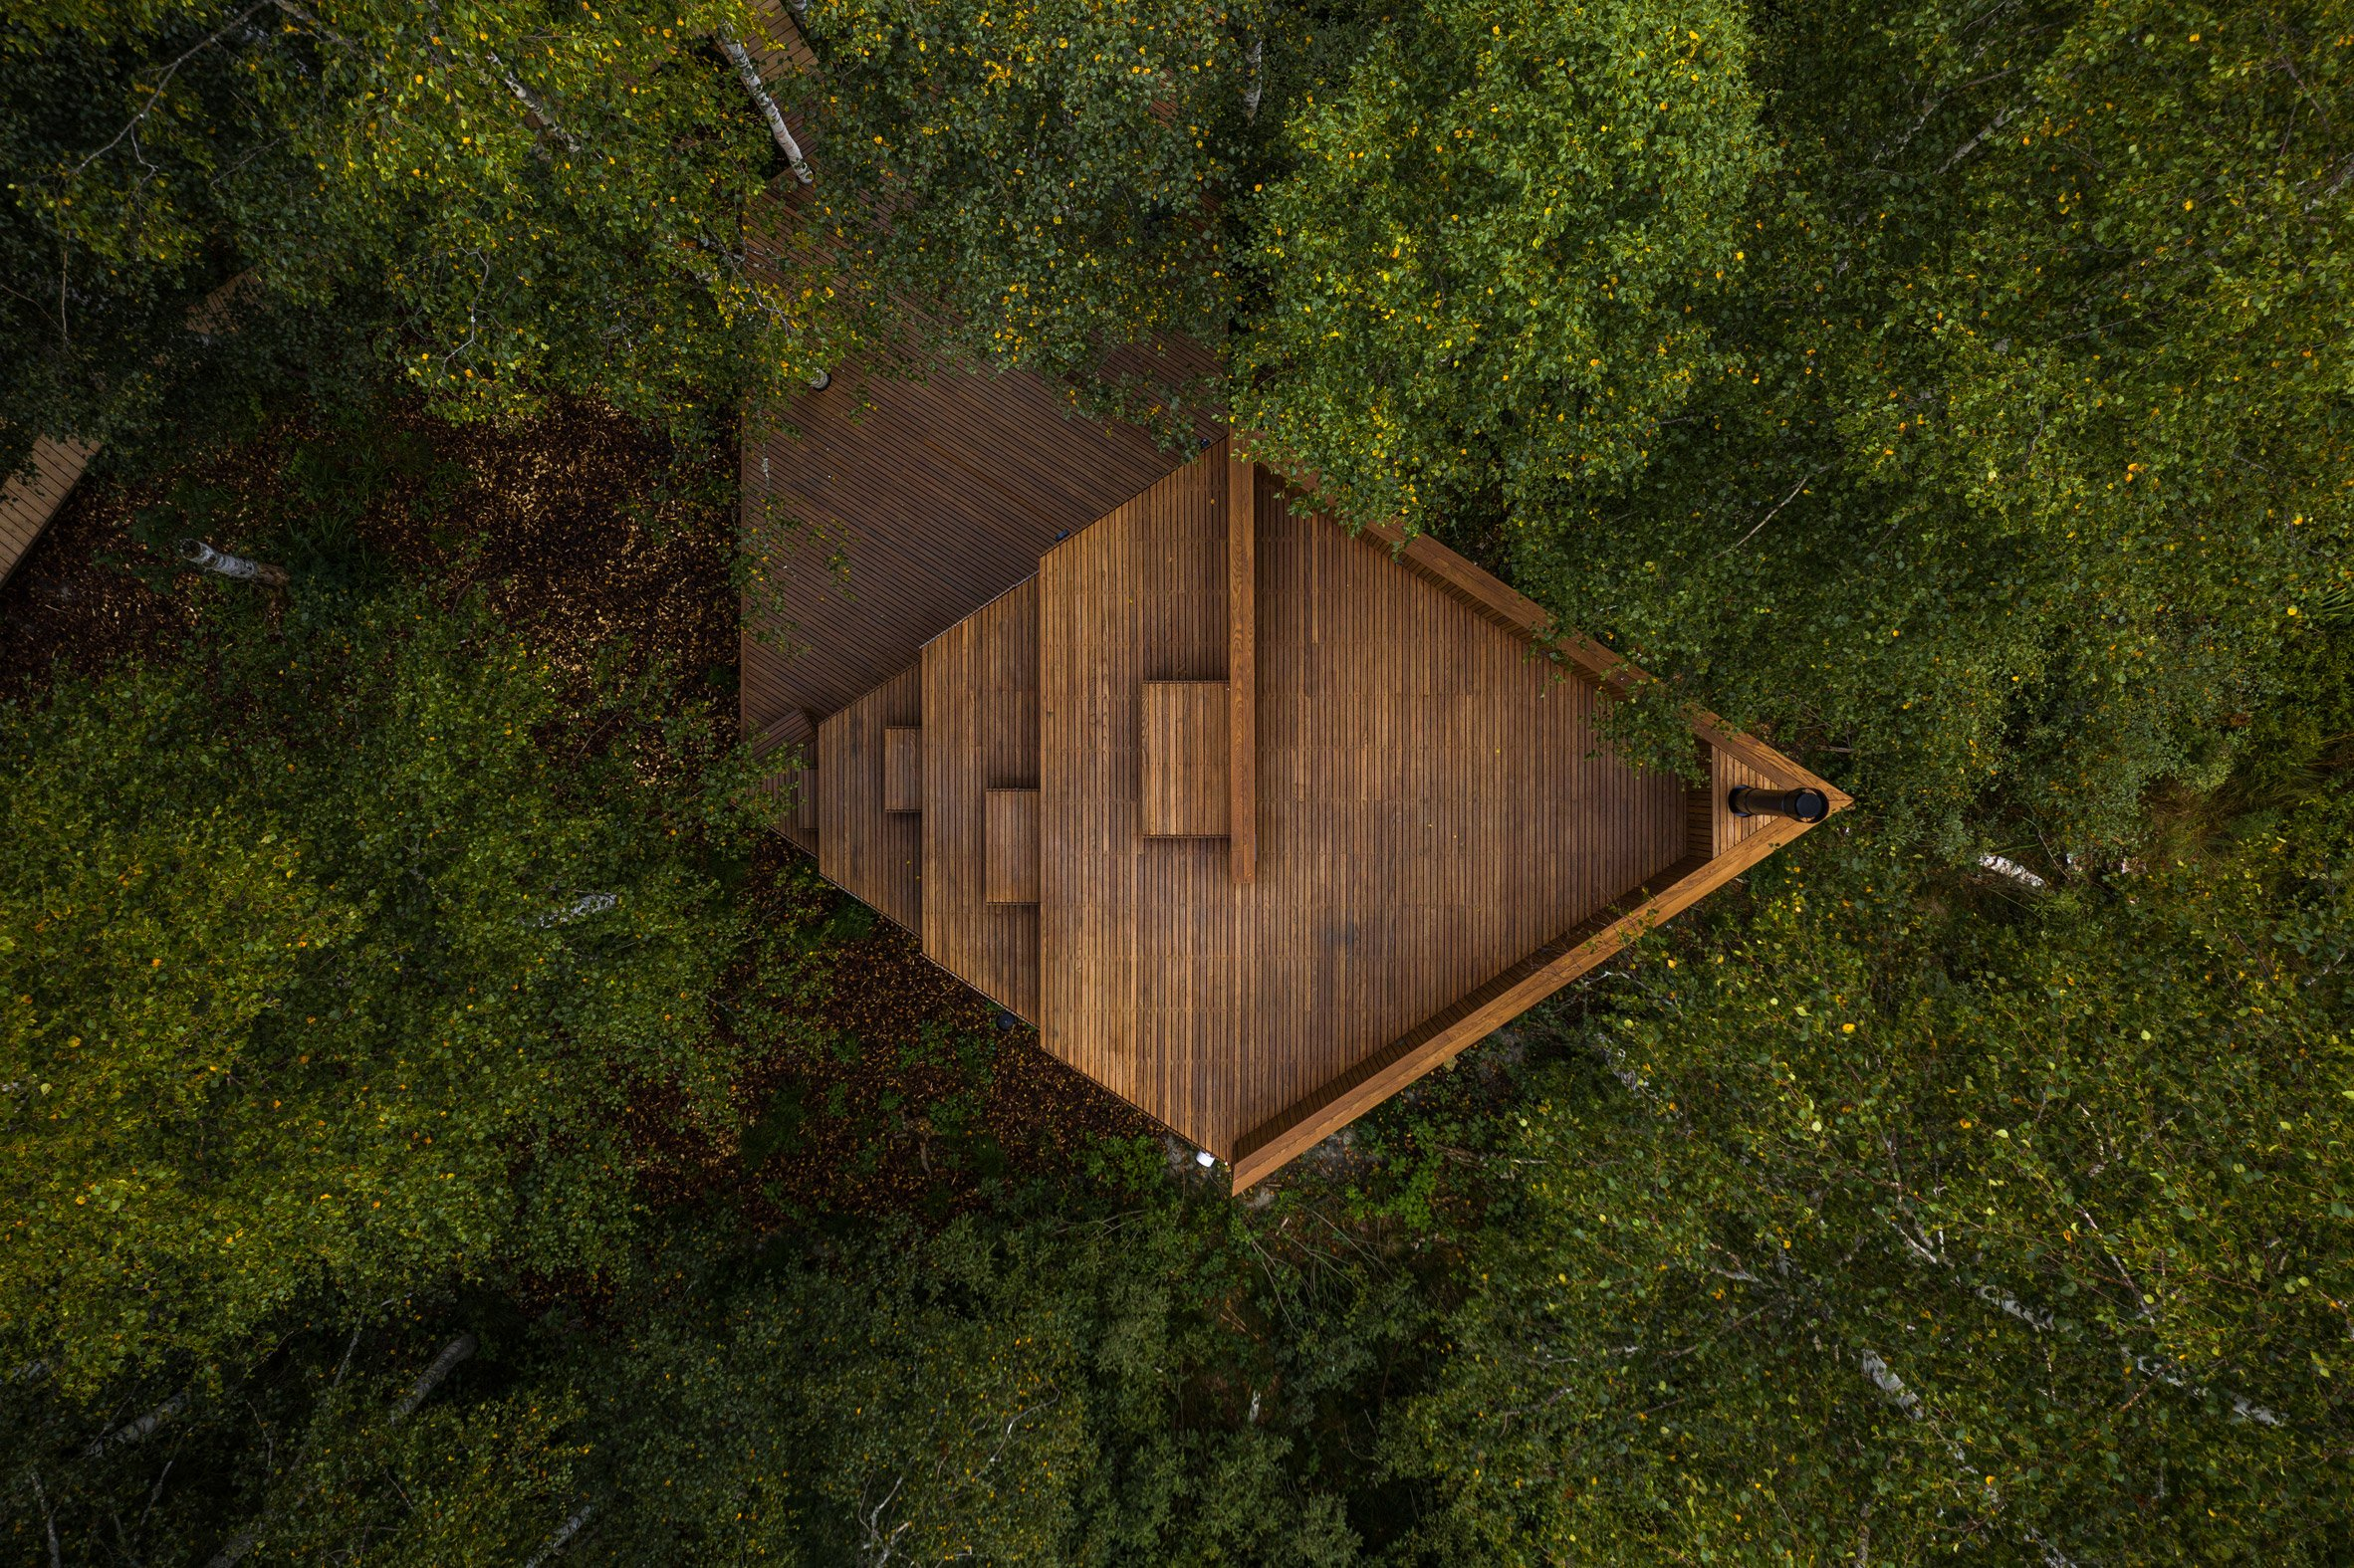 An aerial view of a wooden cabin in Estonia